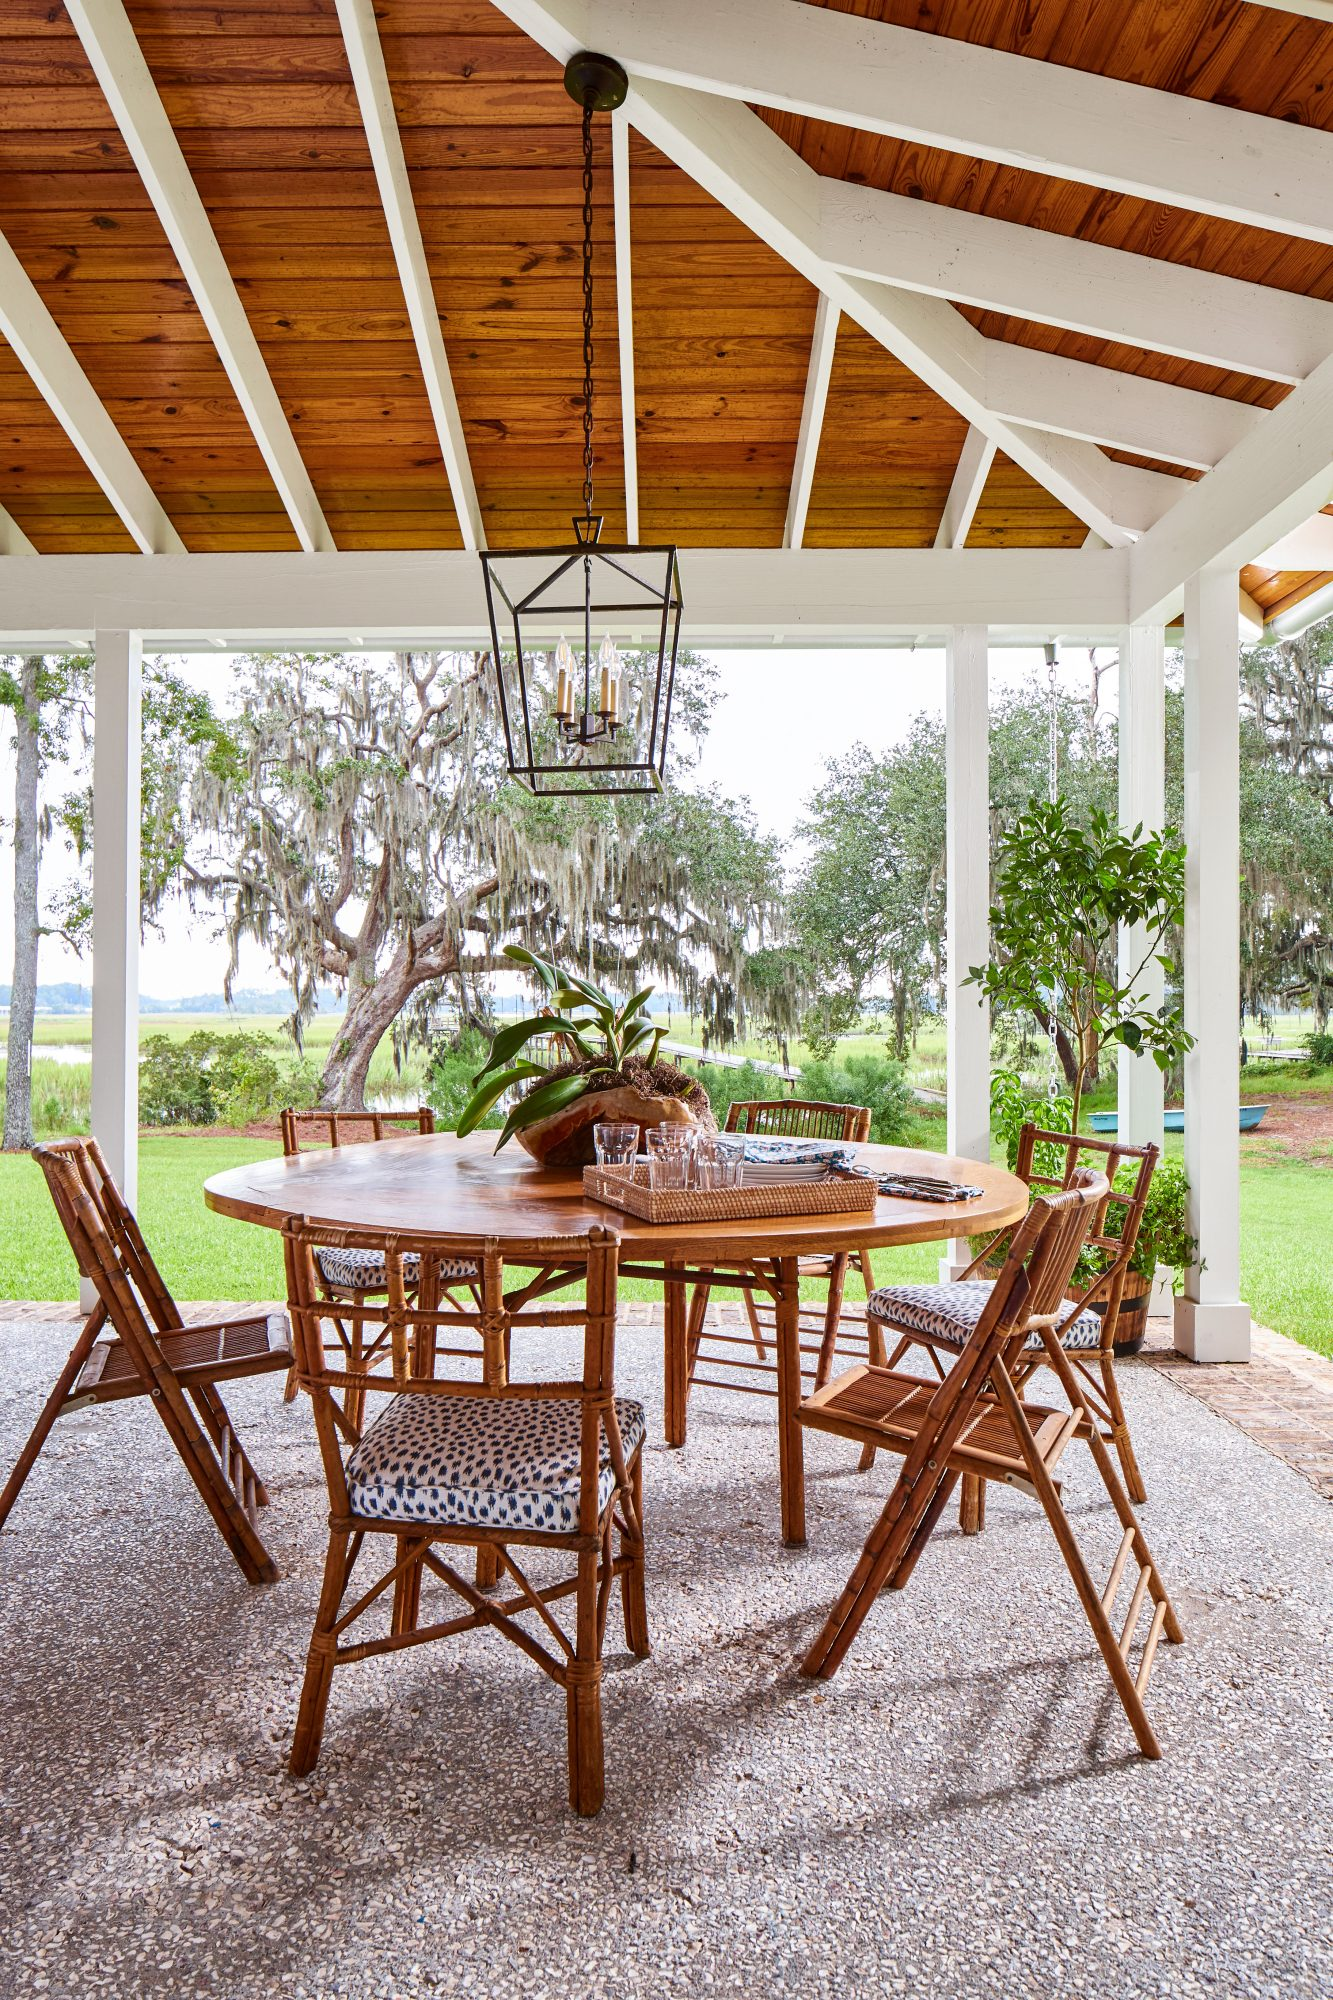 Watson Family Farmhouse in Savannah, GA Outdoor Dining Area